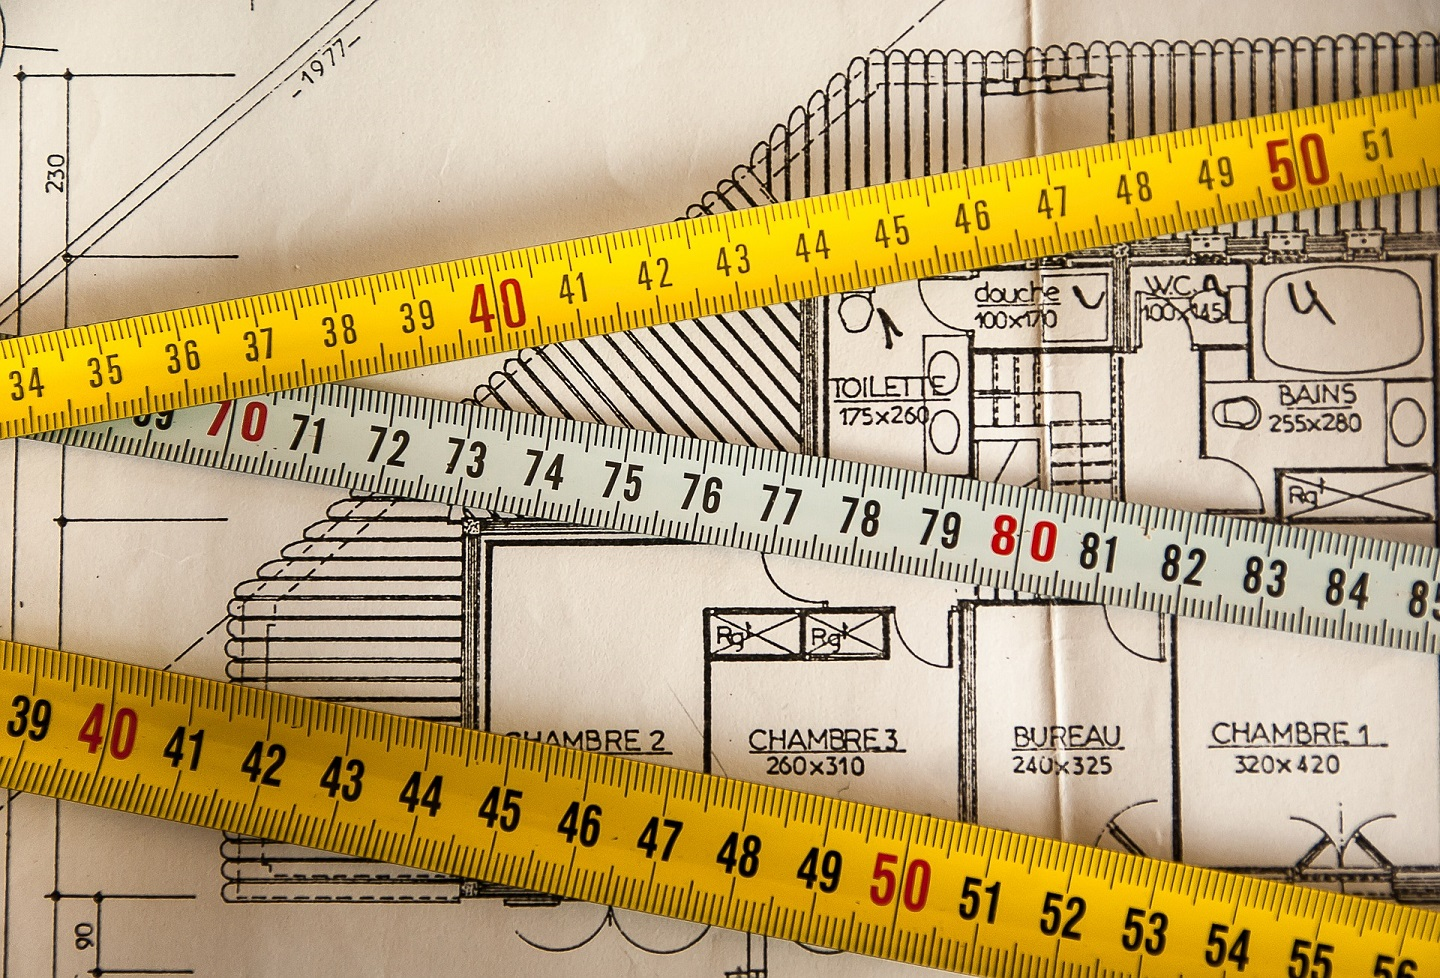 Make sure you measure the actual space size before buying a house